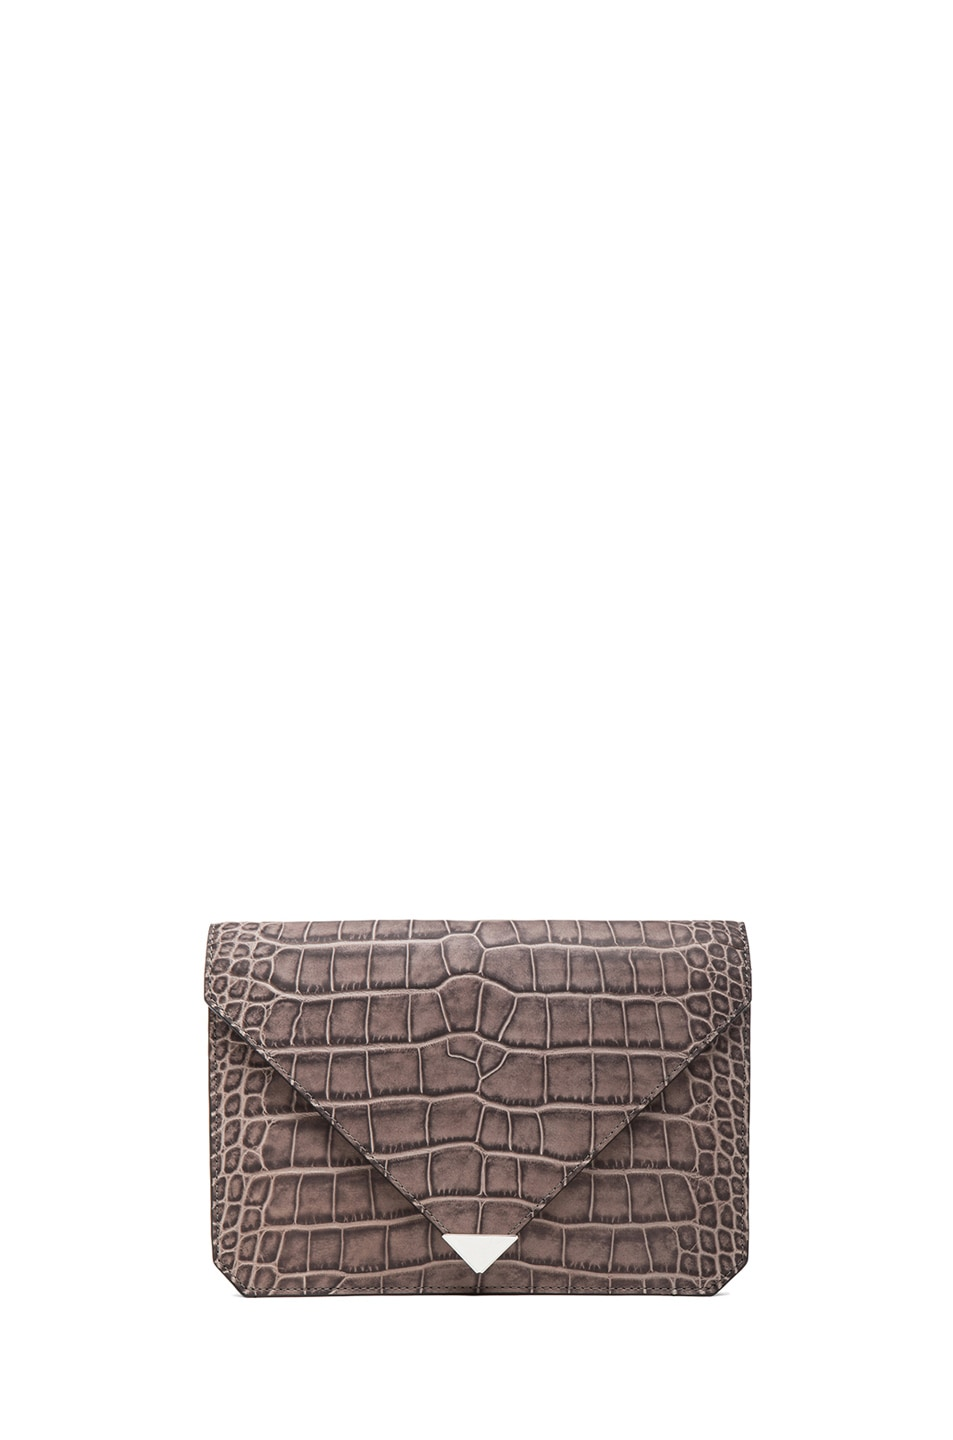 Image 1 of Alexander Wang Prisma Croc Envelope in Oyster